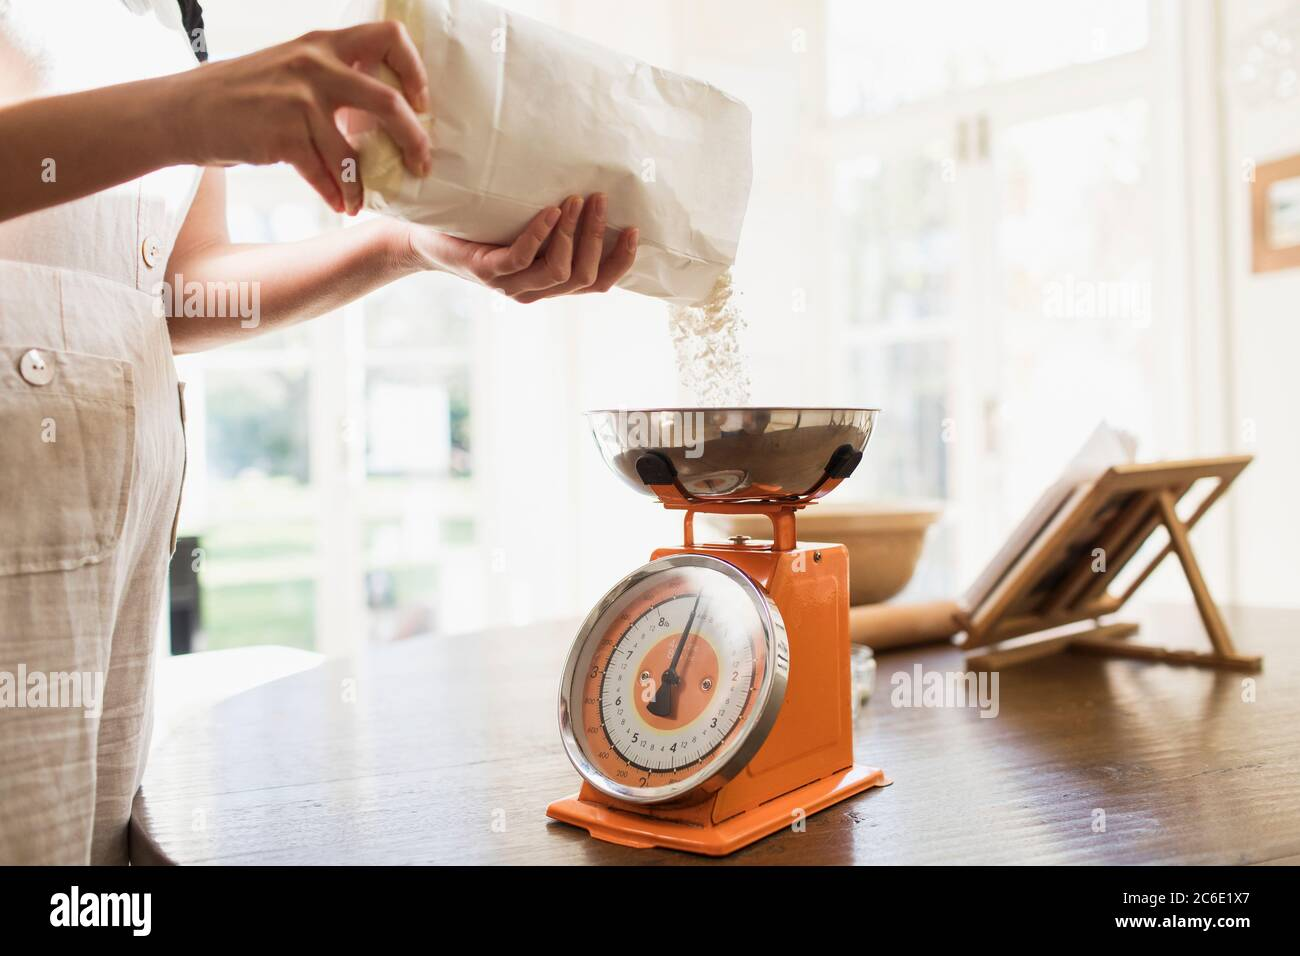 Woman measuring flour for baking in kitchen Stock Photo